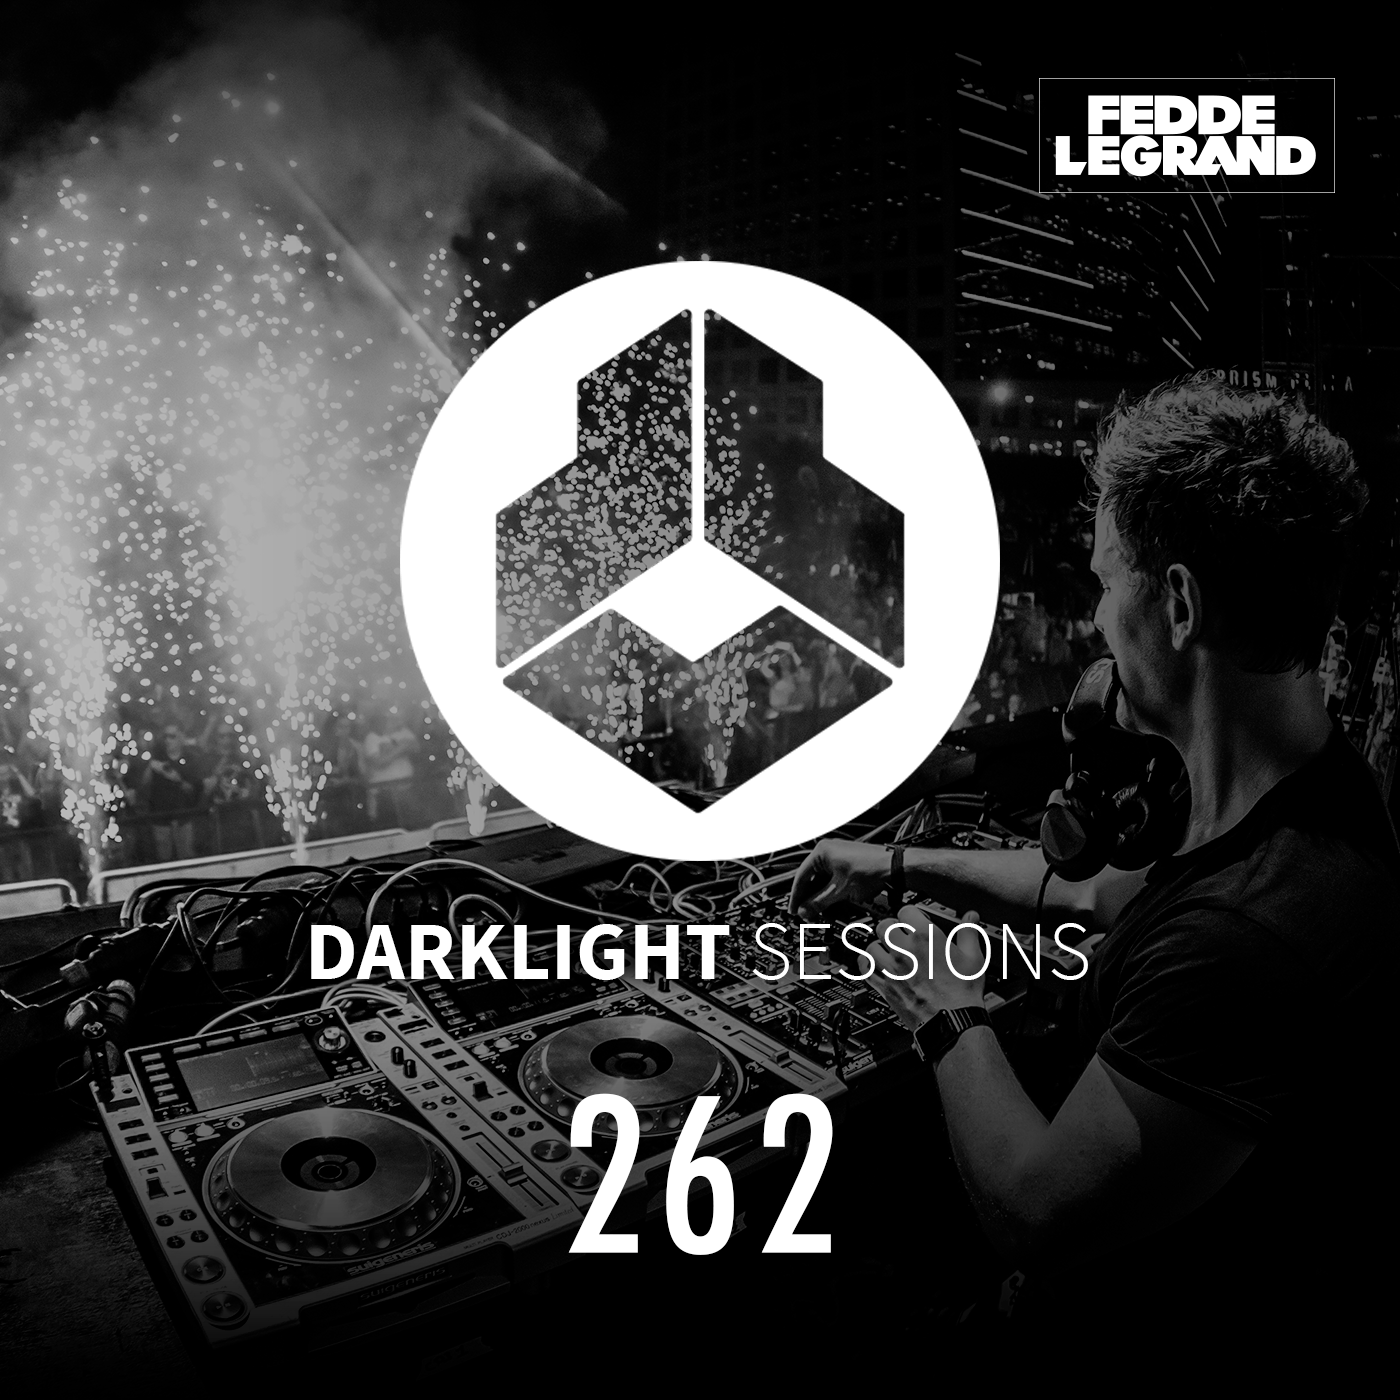 Darklight Sessions 262